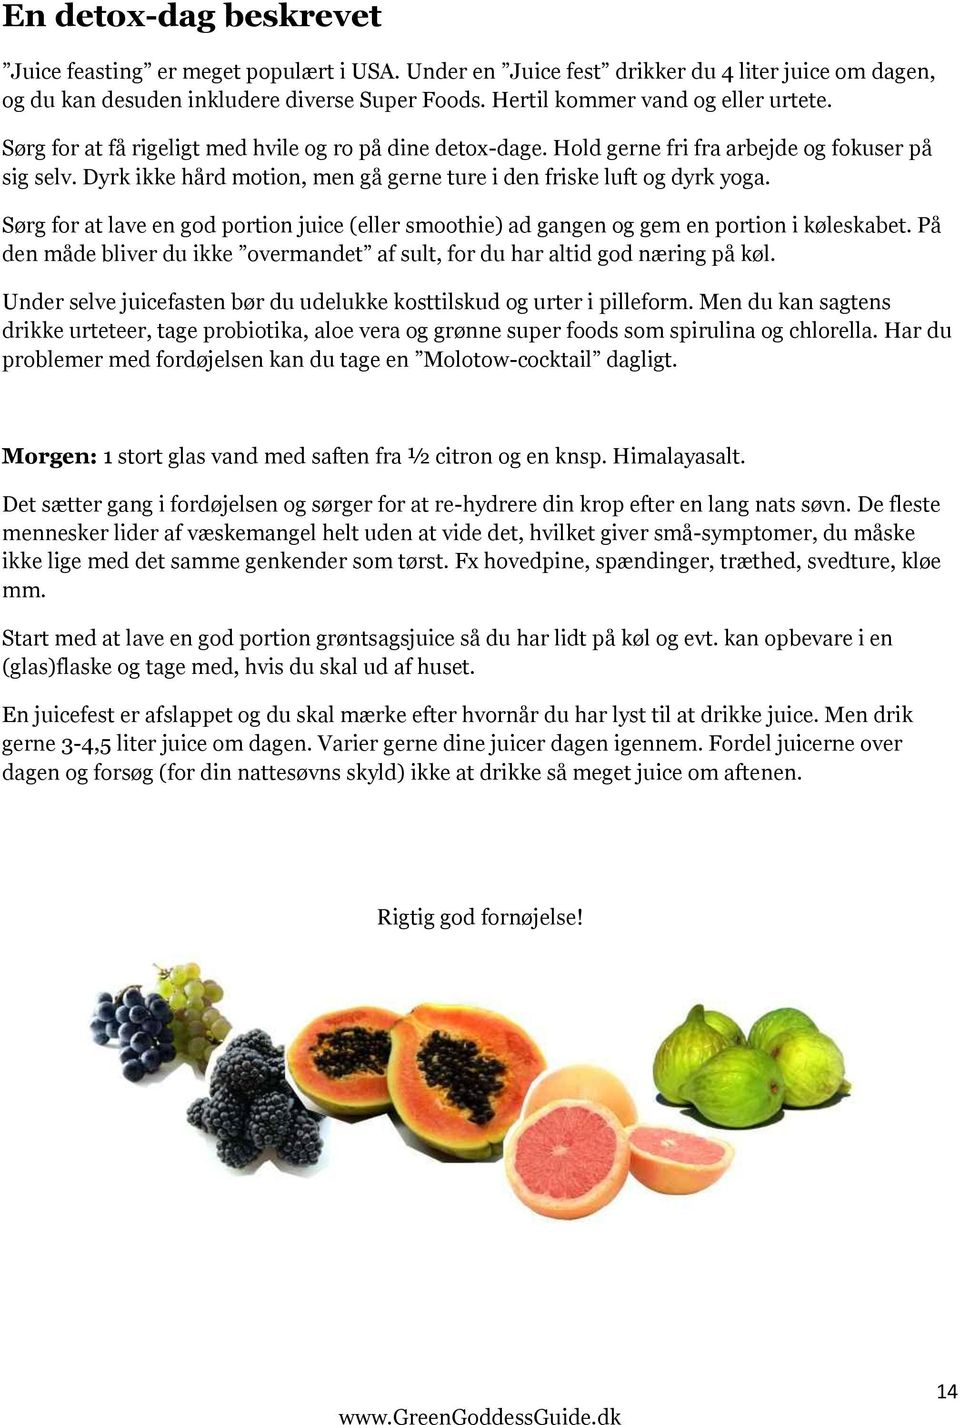 Dyrk ikke hård motion, men gå gerne ture i den friske luft og dyrk yoga. Sørg for at lave en god portion juice (eller smoothie) ad gangen og gem en portion i køleskabet.